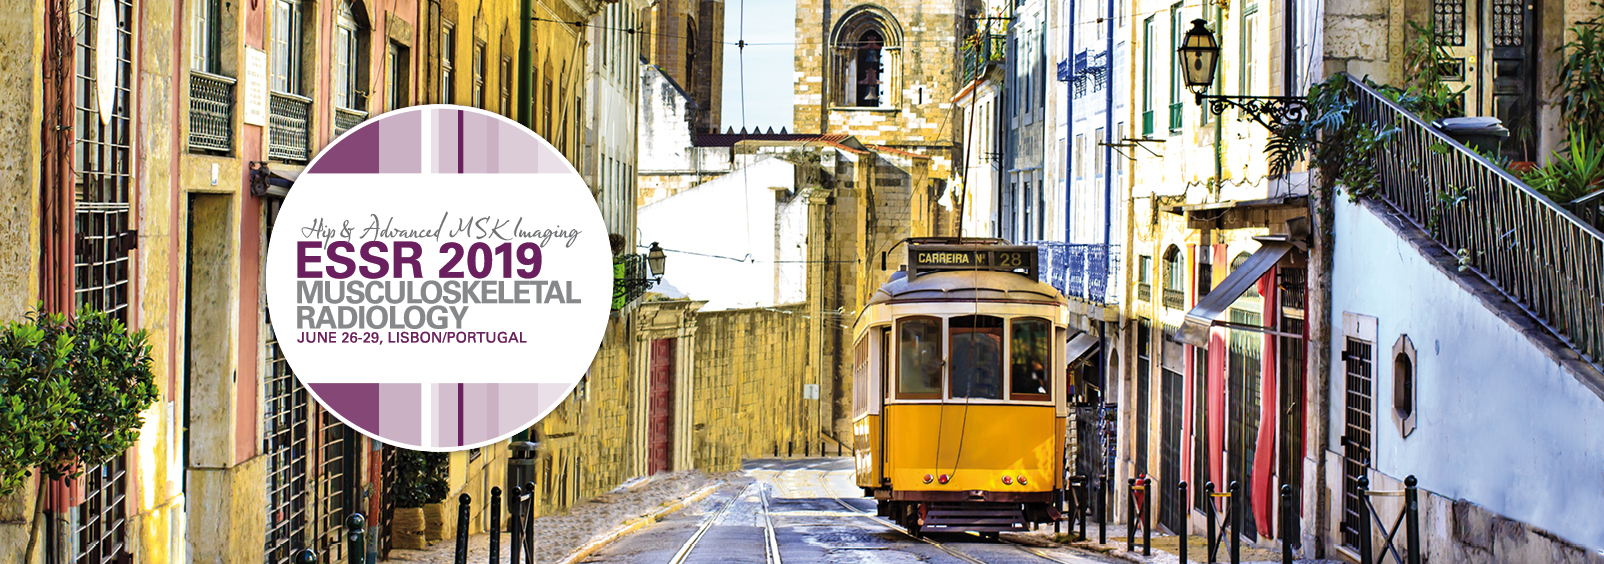 ESSR 2019 - European Society of Musculoskeletal Radiology